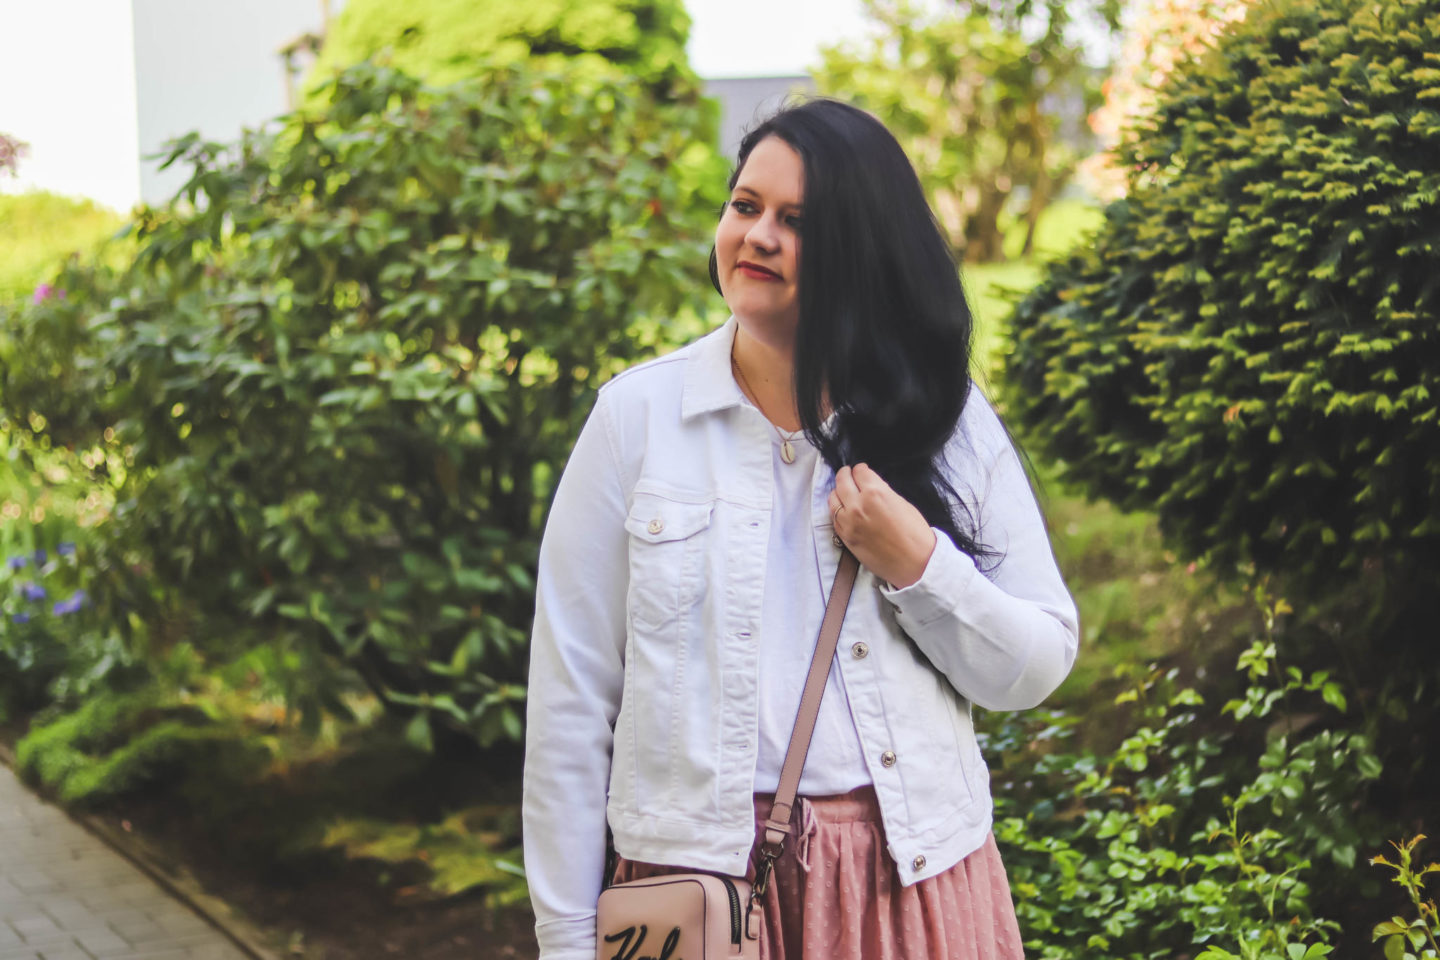 (Outfit) Rosa Boho Minirock mit weißer Jeans Jacke